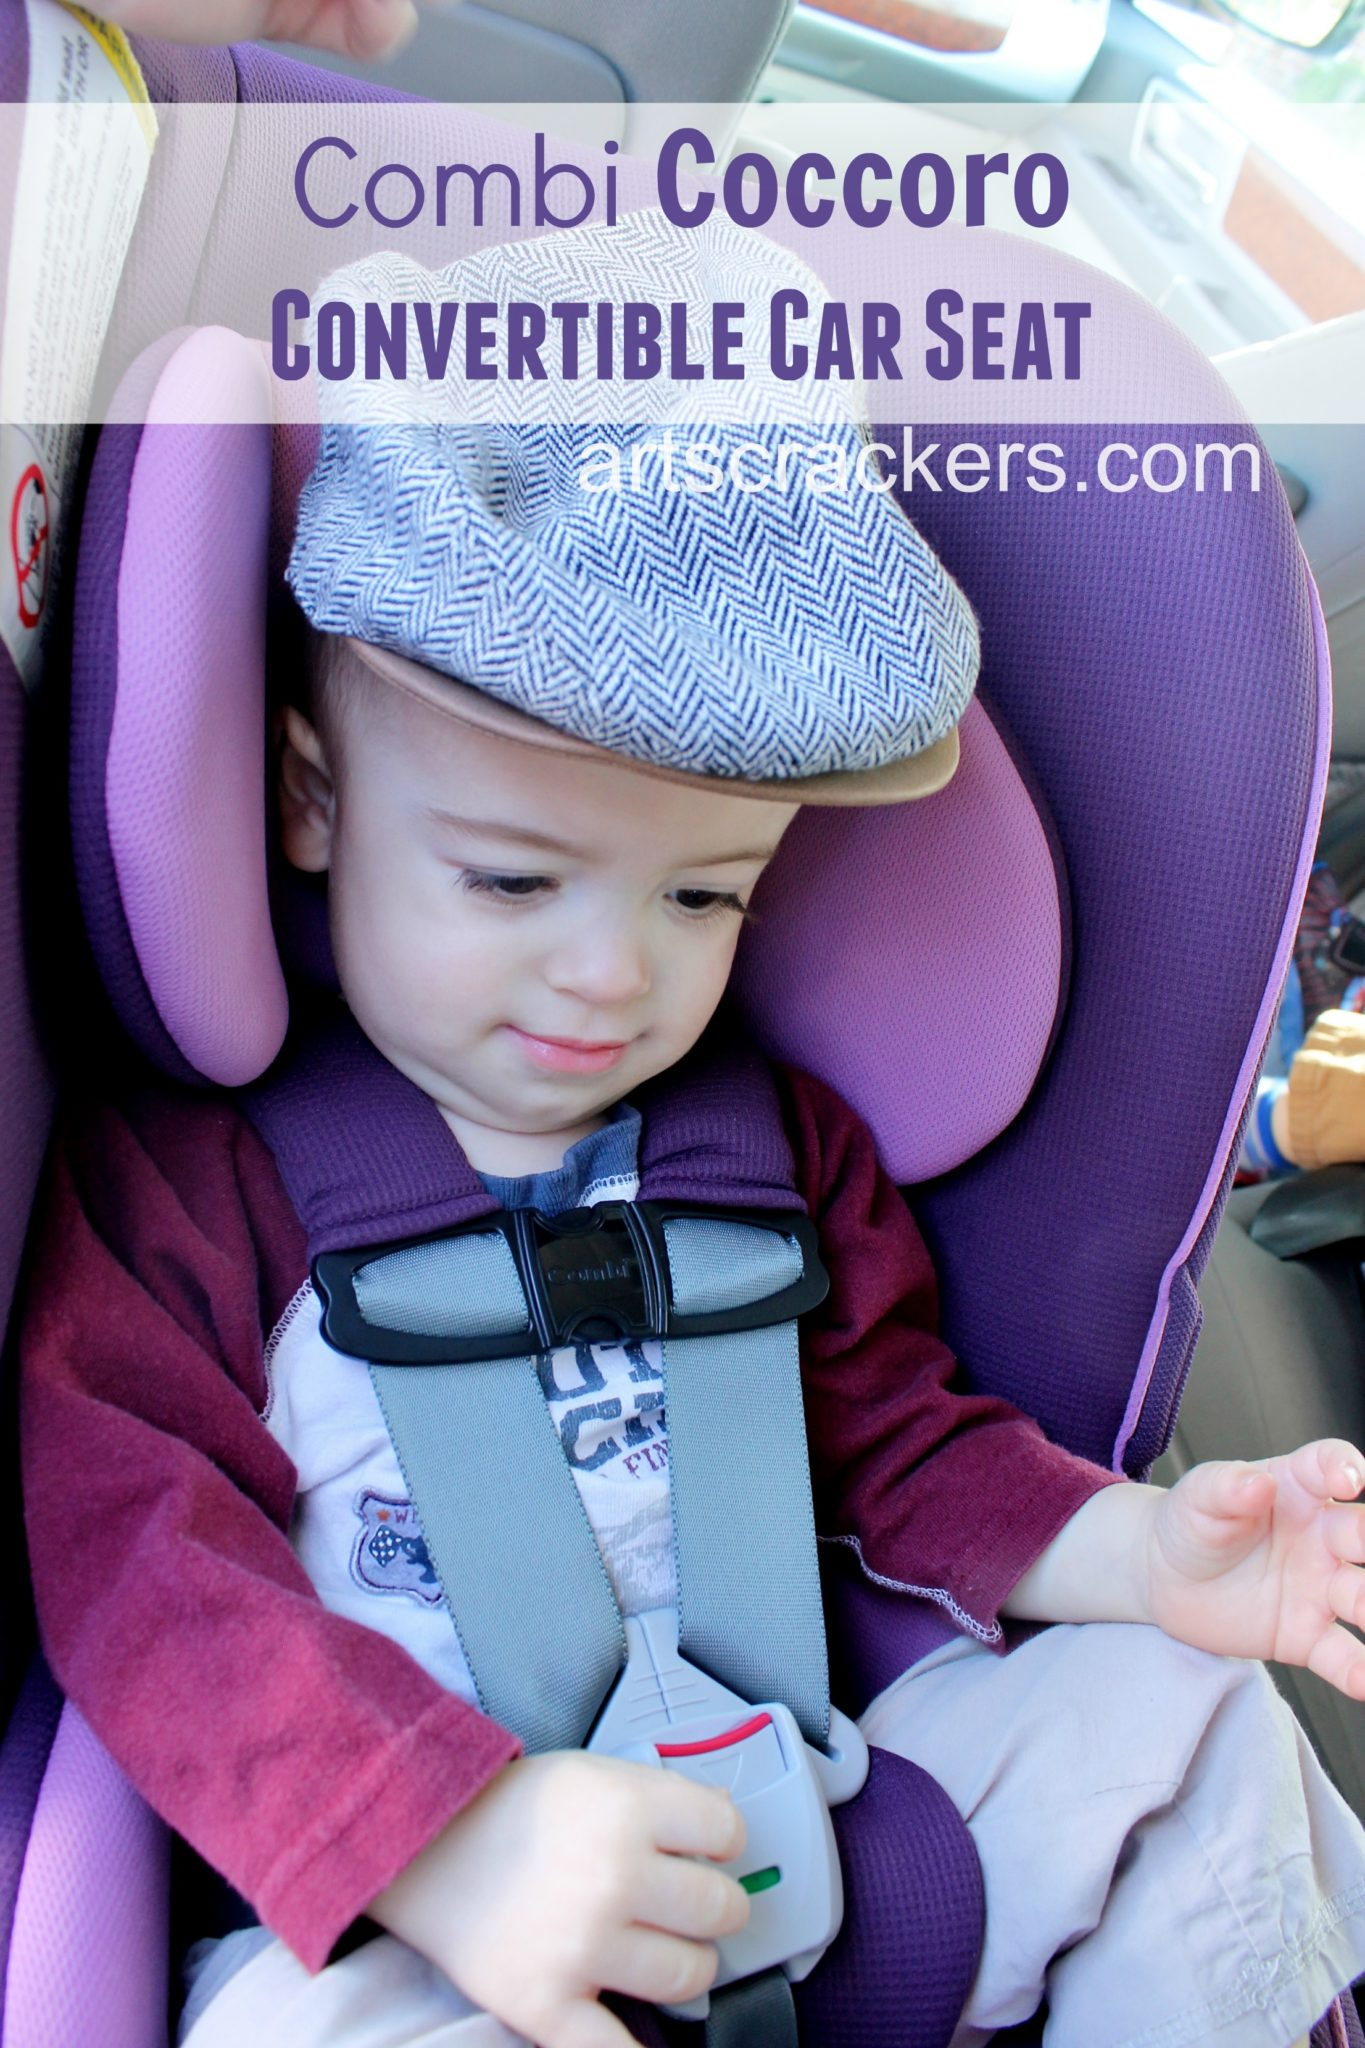 Combi Coccoro Convertible Car Seat | Review and Giveaway